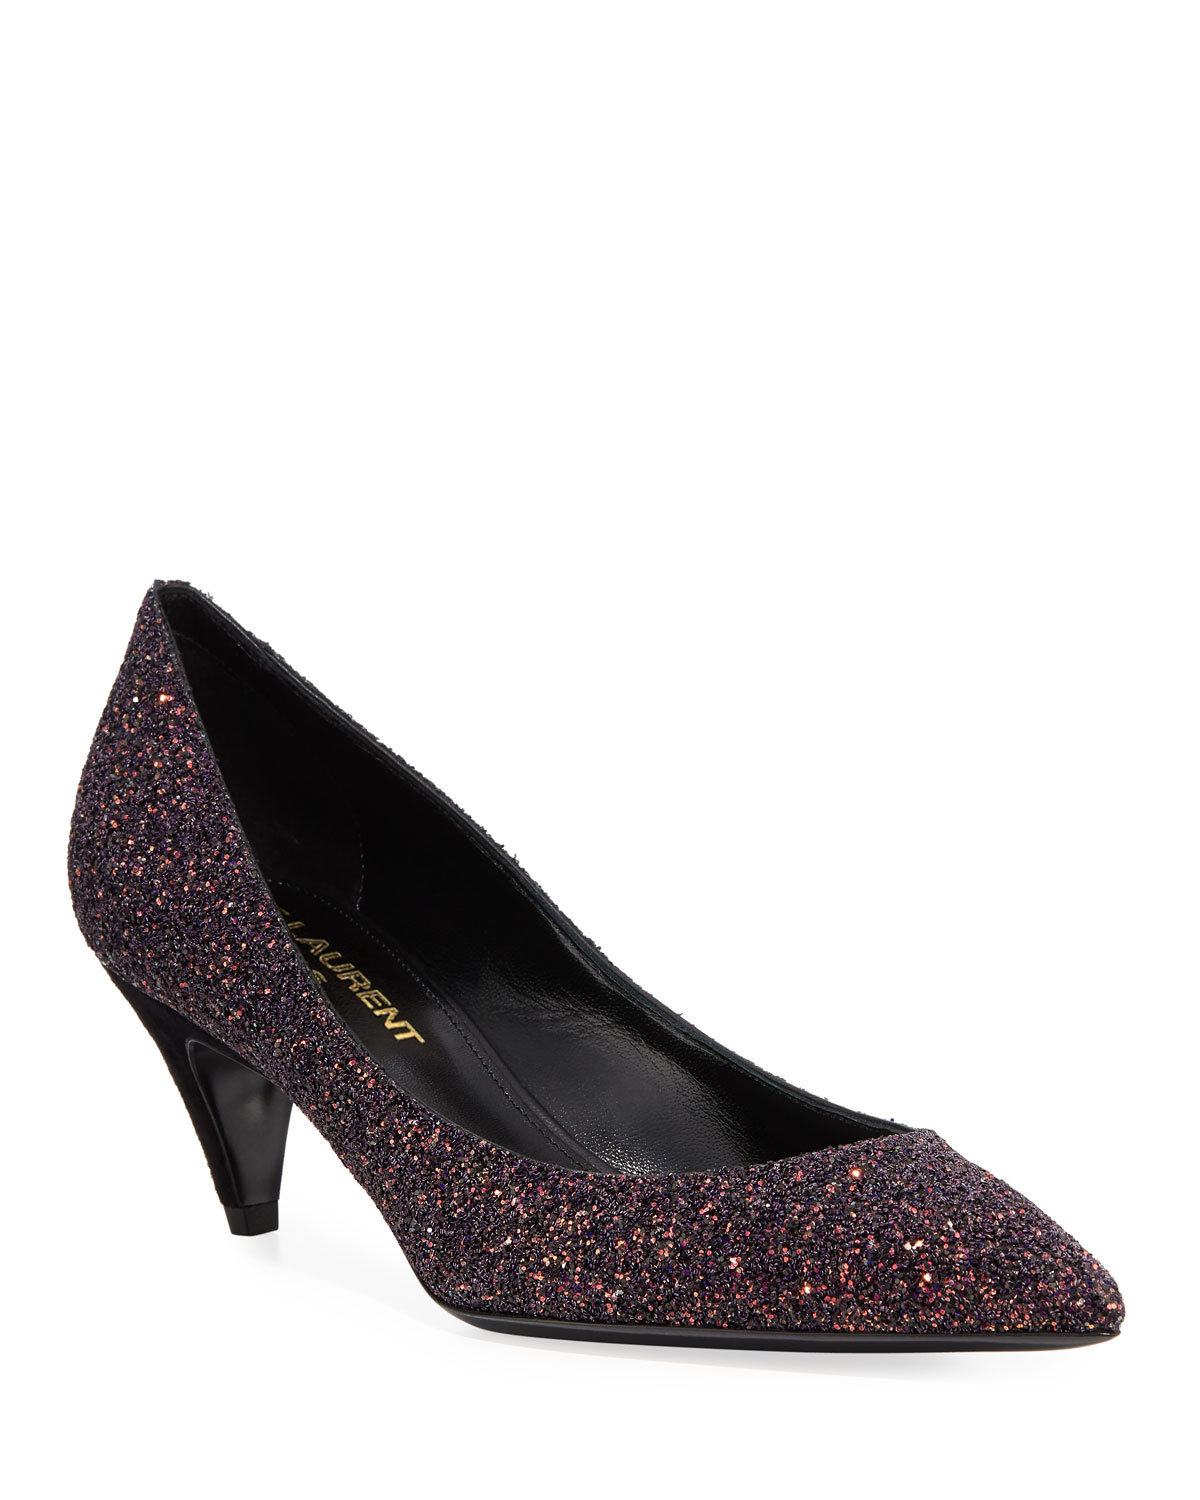 5b2d0fd5896 Saint Laurent Charlotte Glitter Point-toe Kitten-Heel Pumps